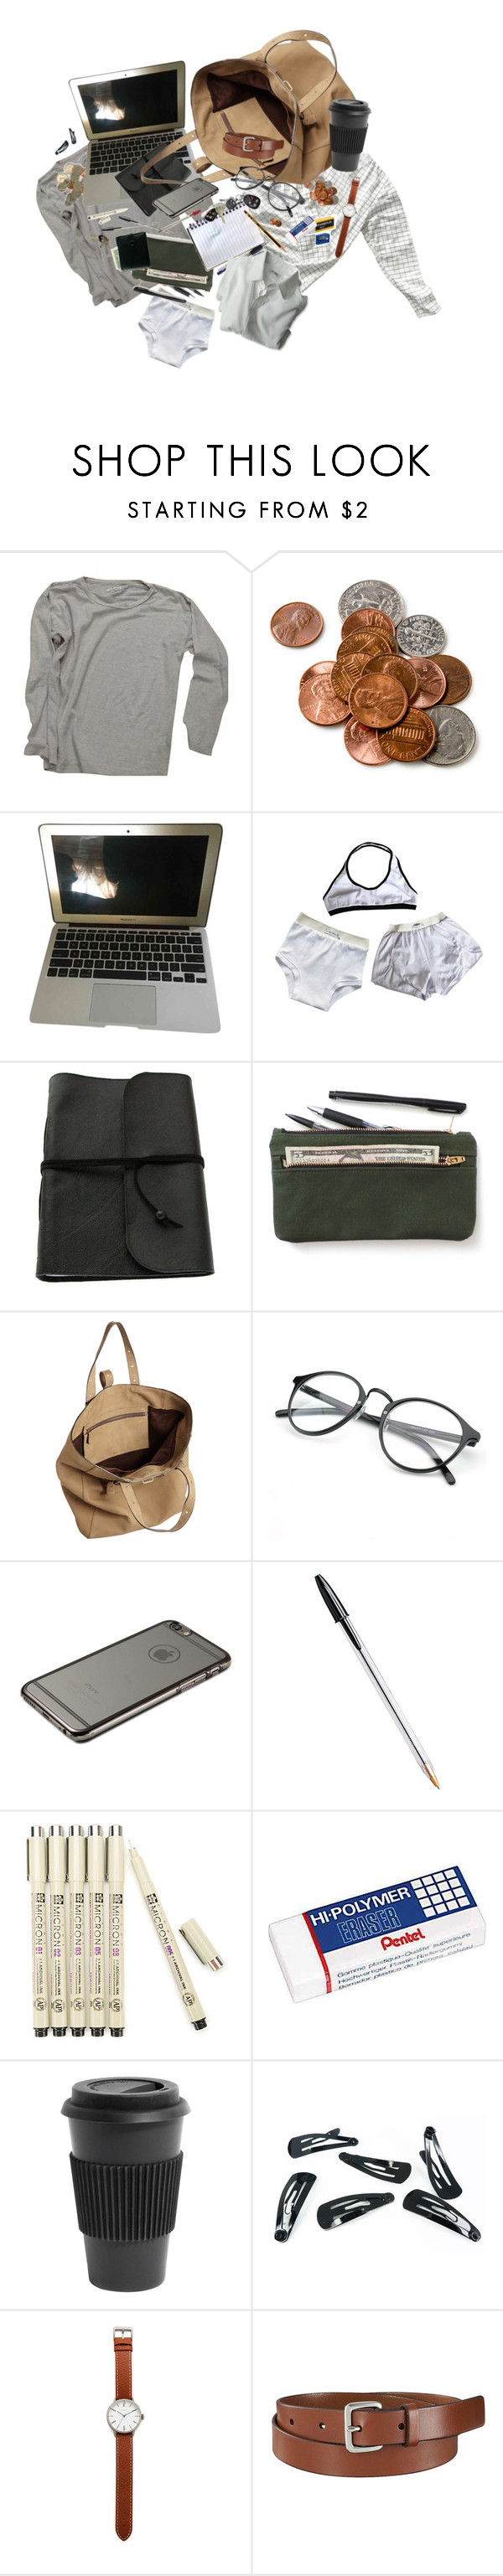 """Emmet's Bag"" by irondeficient ❤ liked on Polyvore featuring Étoile Isabel Marant, Apple, Tila March, Pentel, Avon, Dogpile, Homage, Tsovet and Uniqlo"